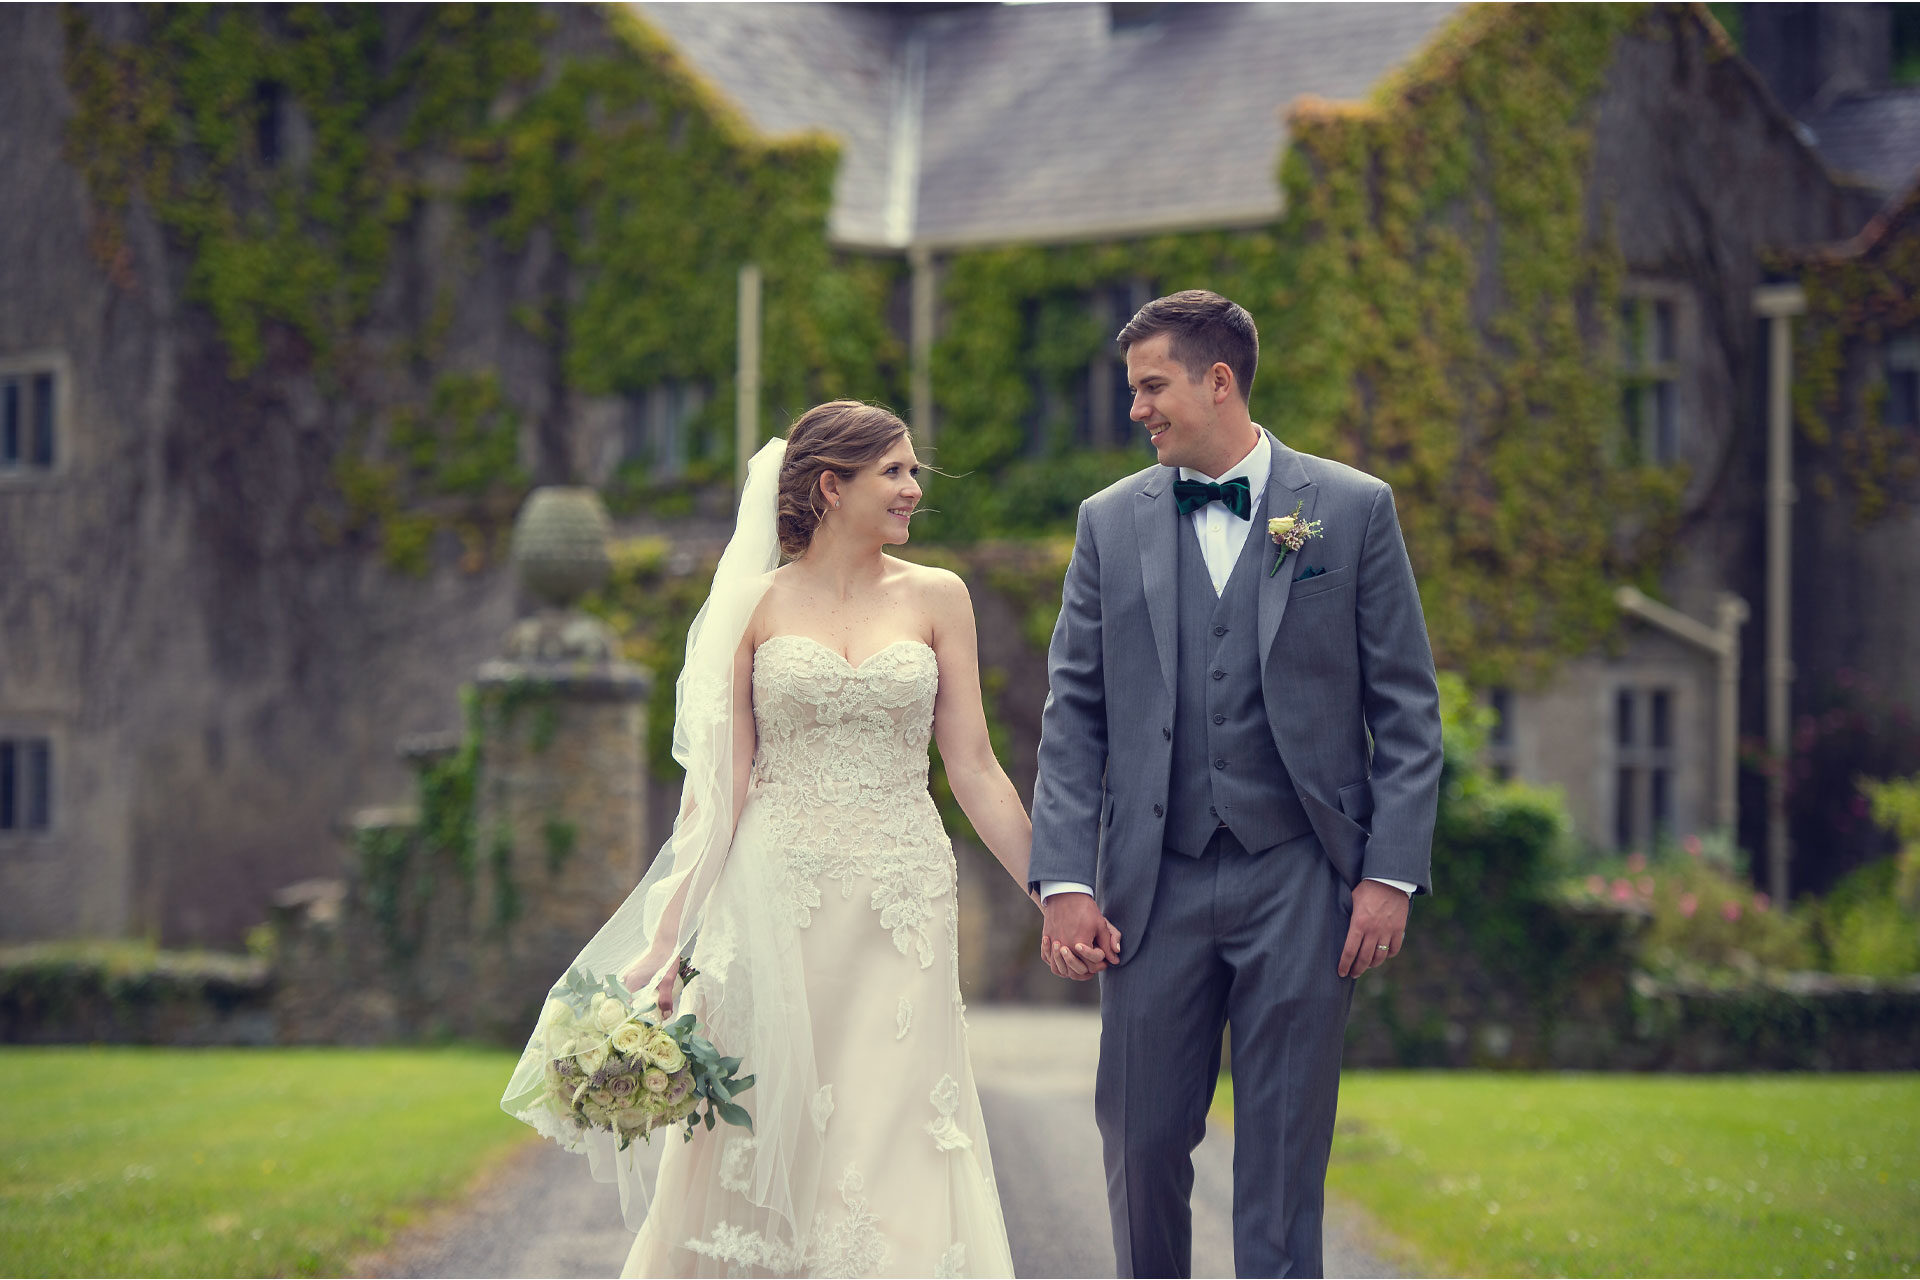 Photo of Lindsey and Jarred on their wedding day, captured at Belle Isle Castle, Lisbellaw, Co. Fermanagh, Northern Ireland.